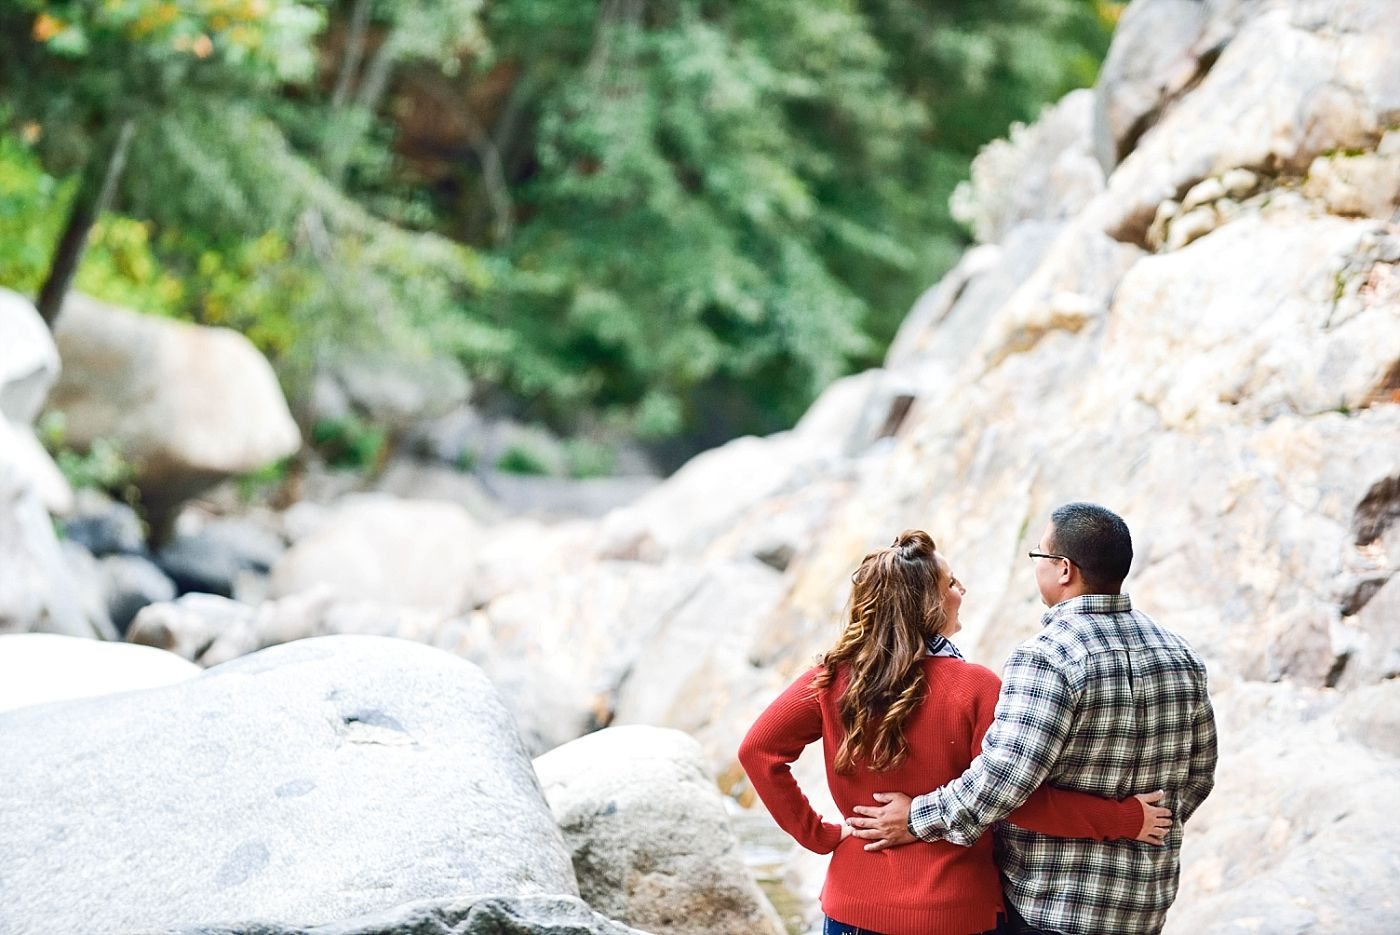 sequoia national park adventure engagement photography session